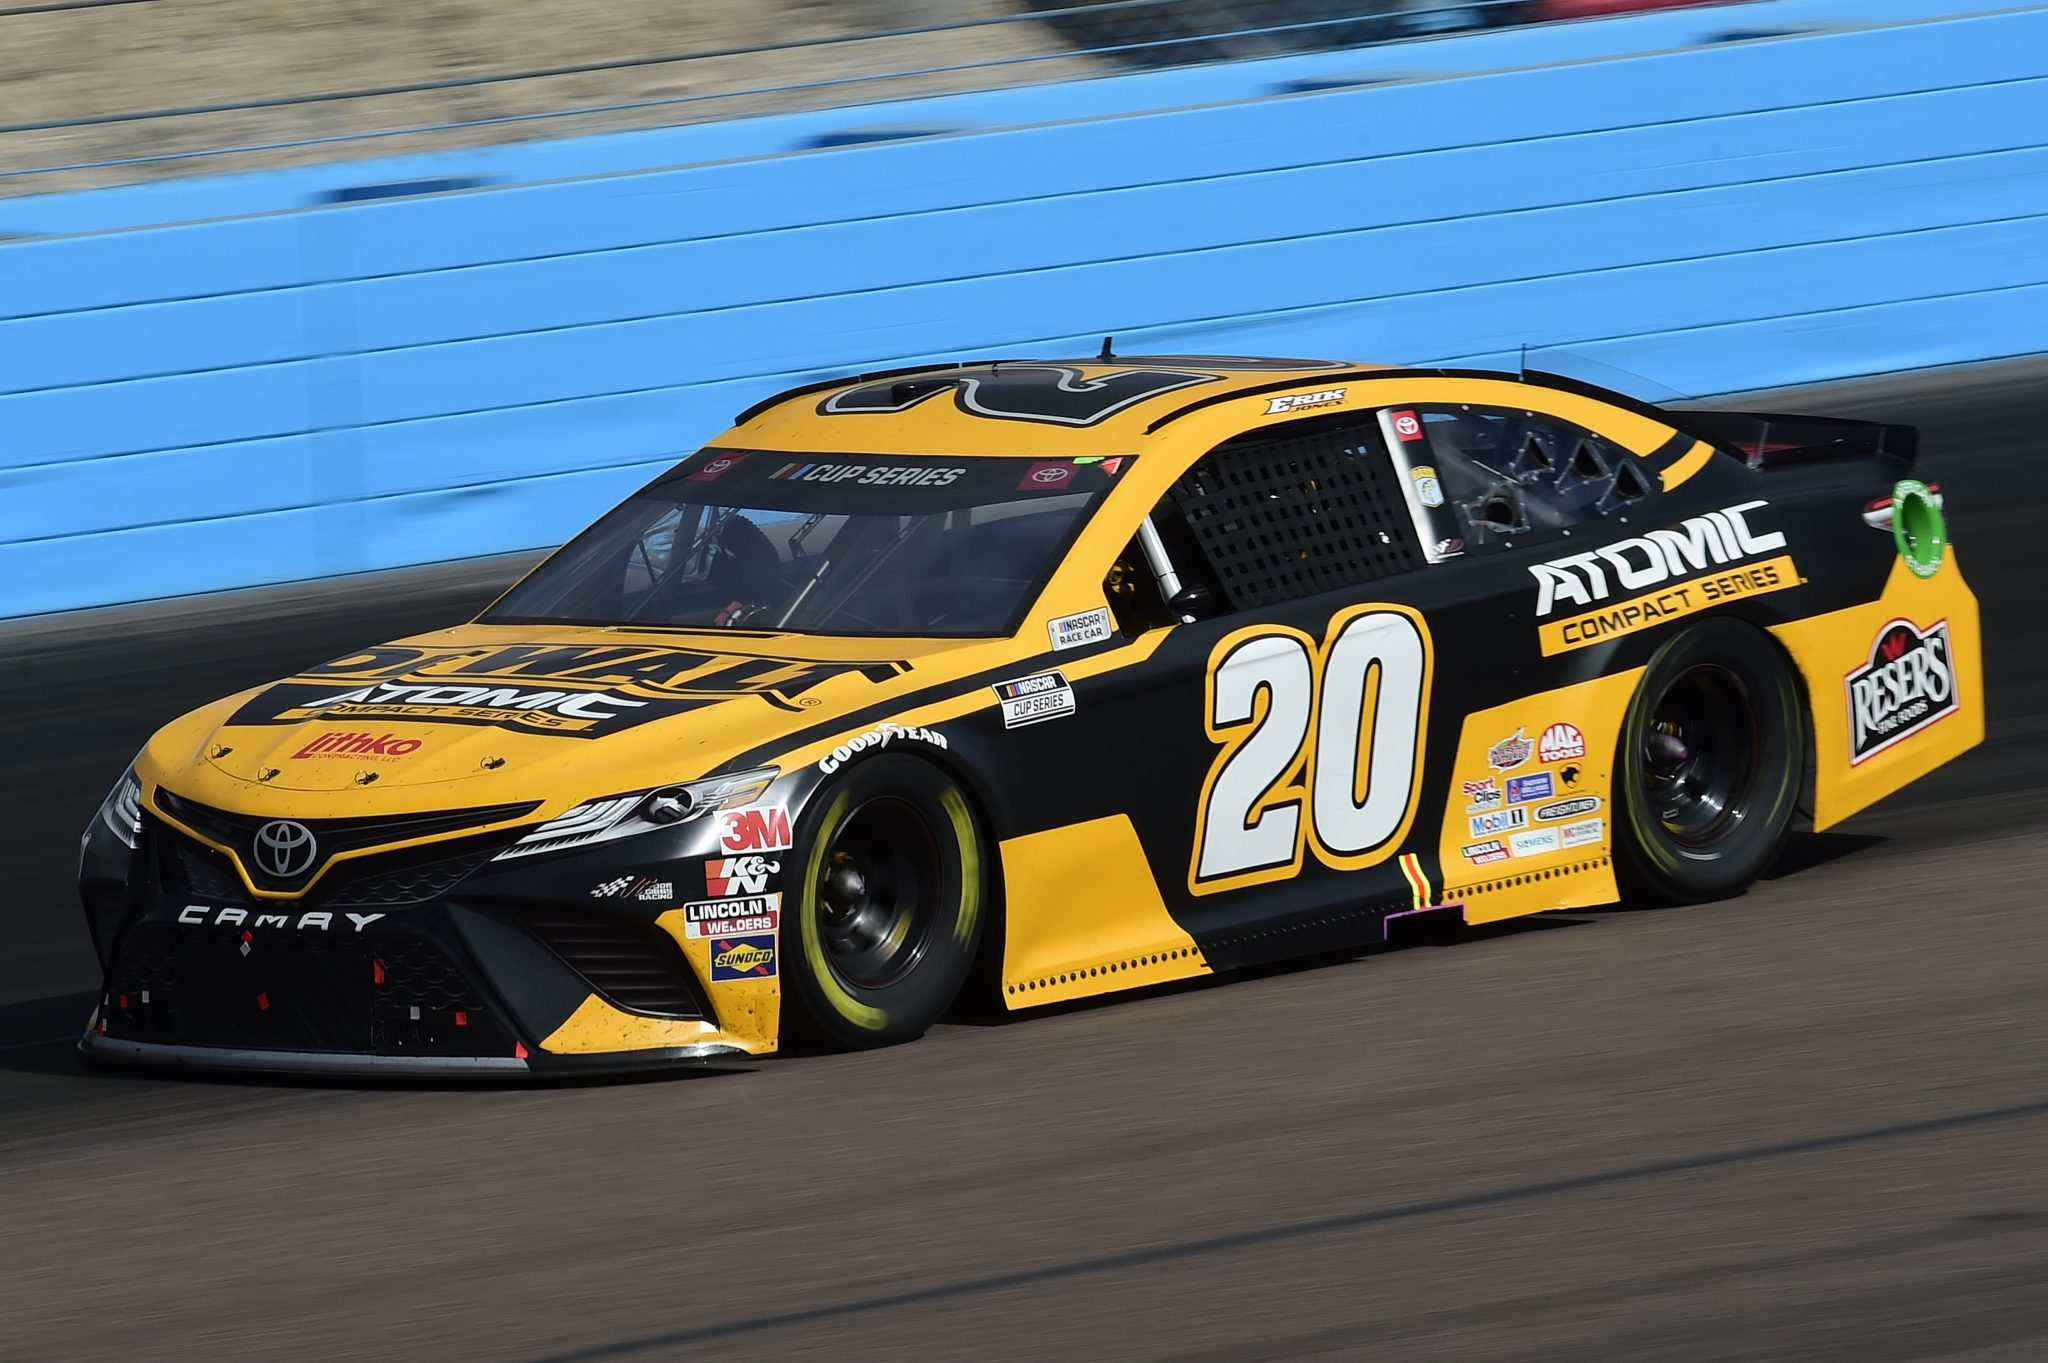 AVONDALE, ARIZONA - NOVEMBER 08: Erik Jones, driver of the #20 DEWALT Atomic Toyota, drives during the NASCAR Cup Series Season Finale 500 at Phoenix Raceway on November 08, 2020 in Avondale, Arizona. (Photo by Jared C. Tilton/Getty Images) | Getty Images